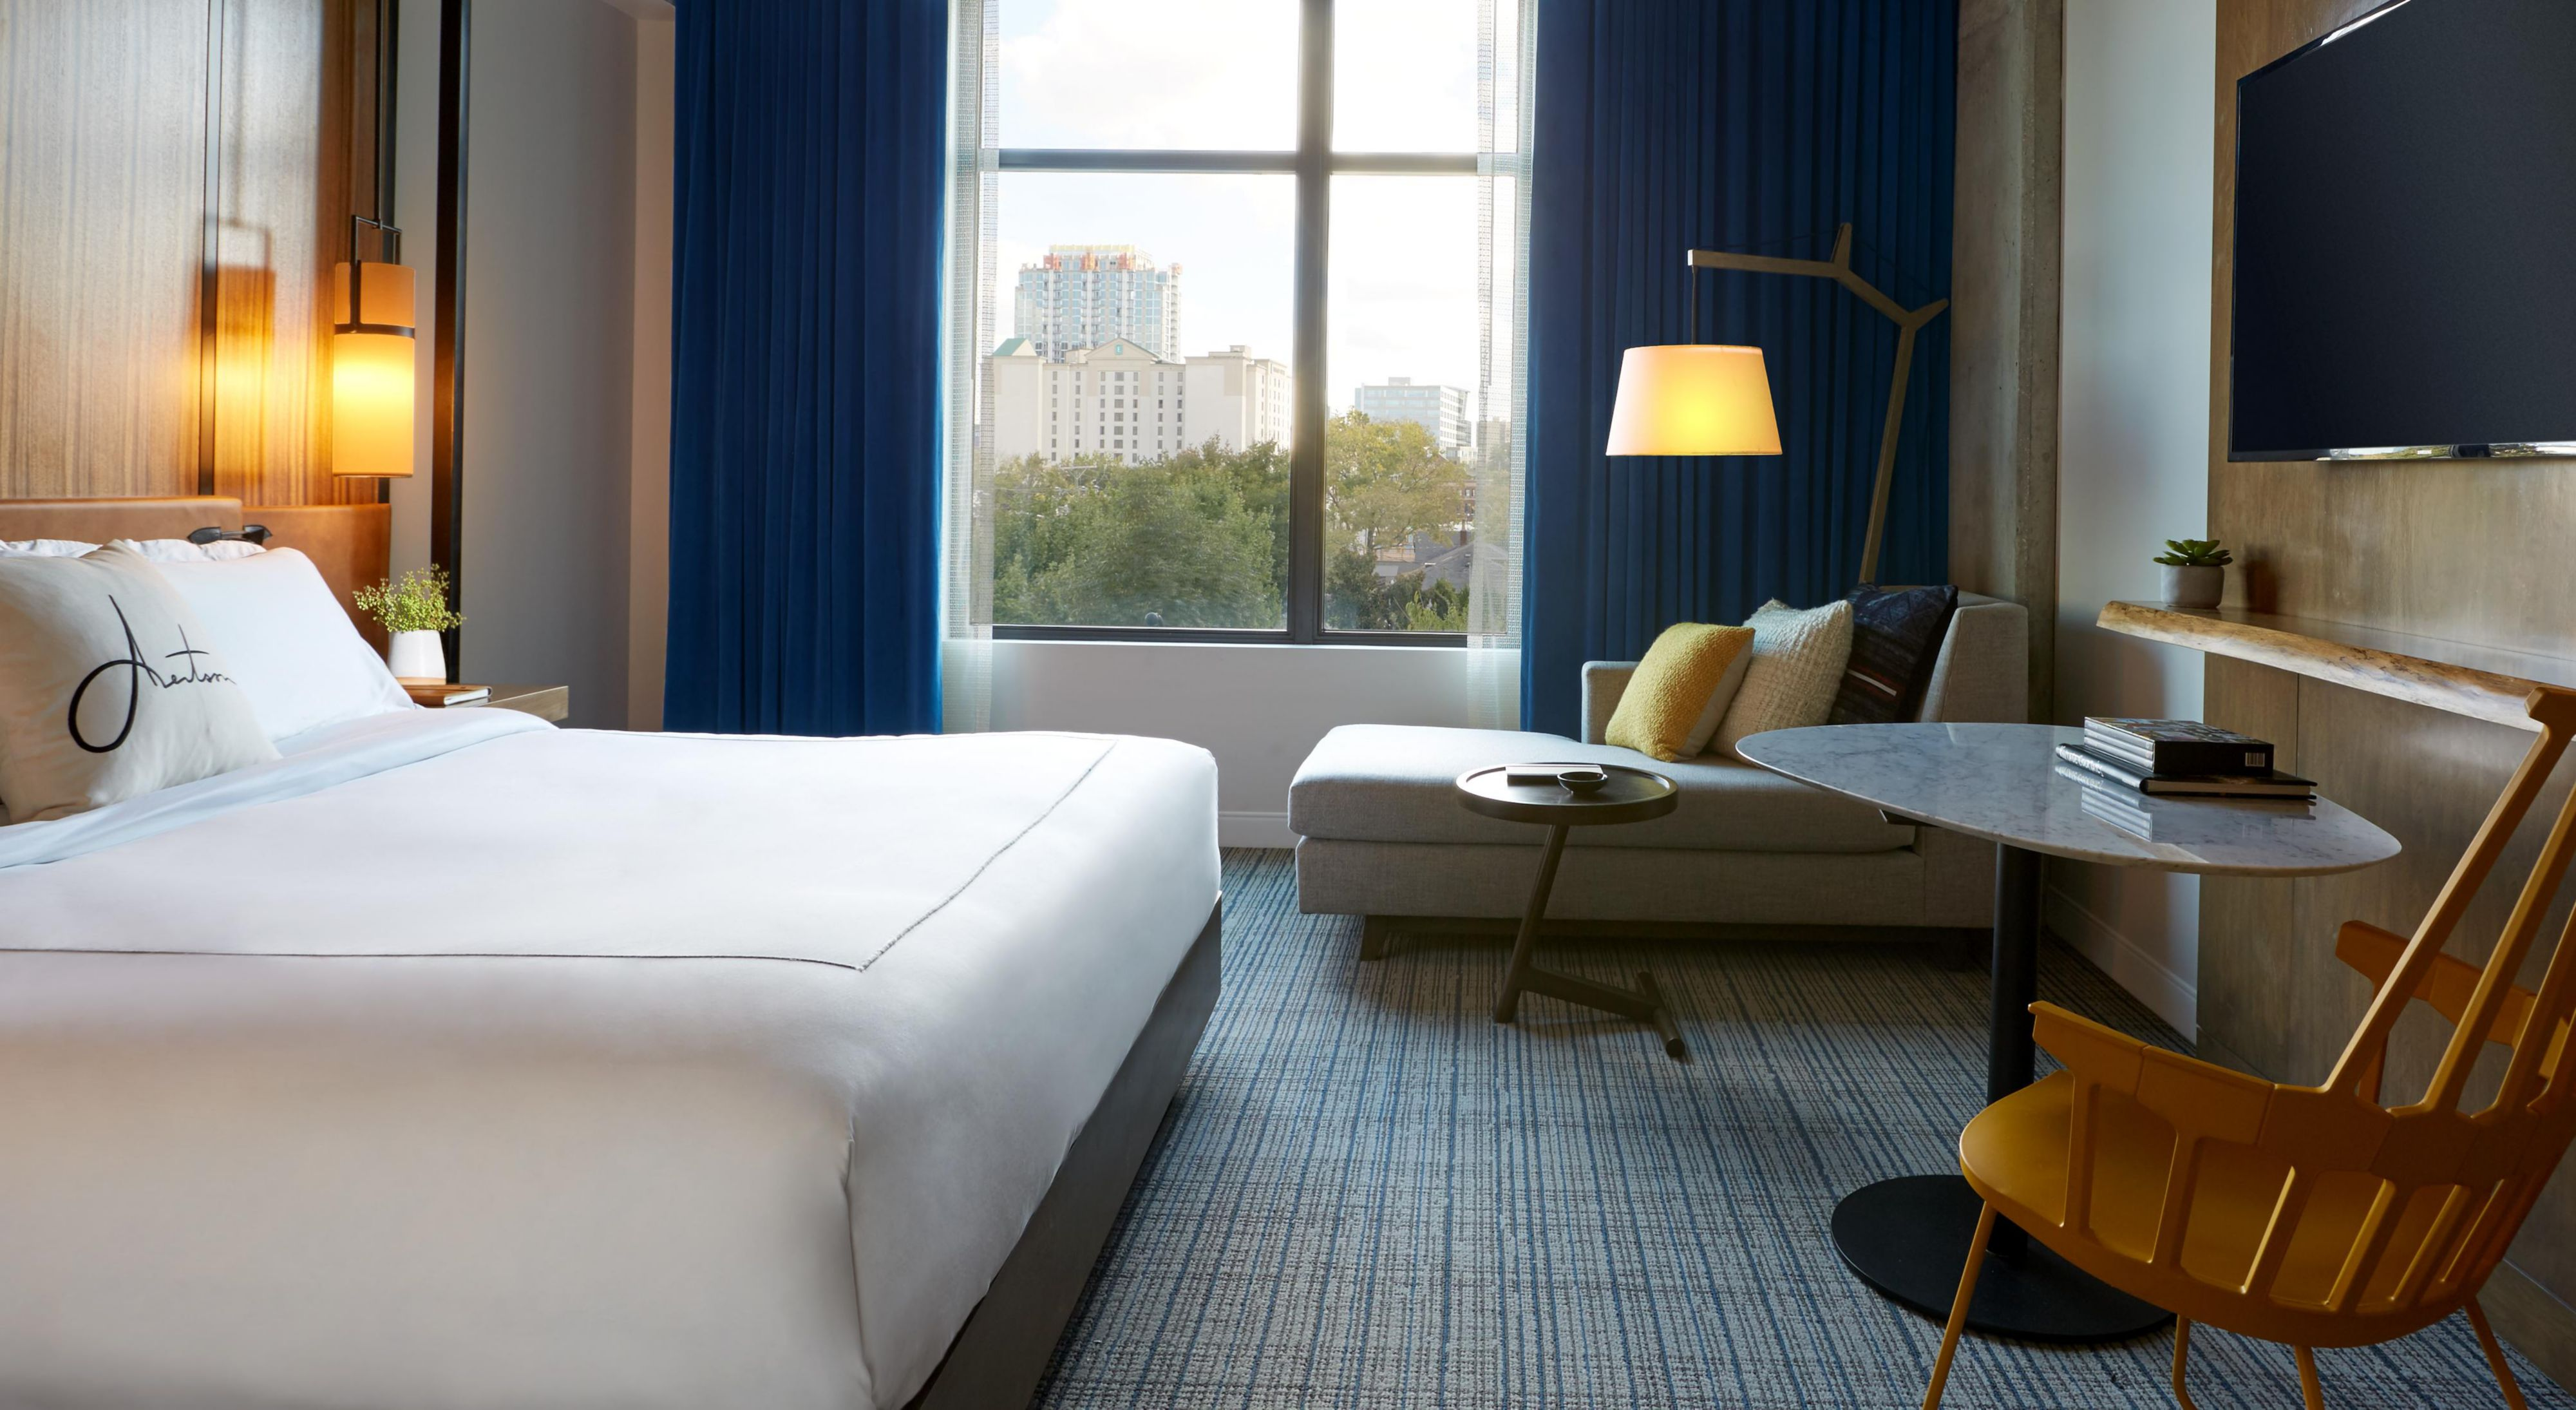 Kimpton Hotels Locations Near Me | Explore Top Boutique Hotels Near You